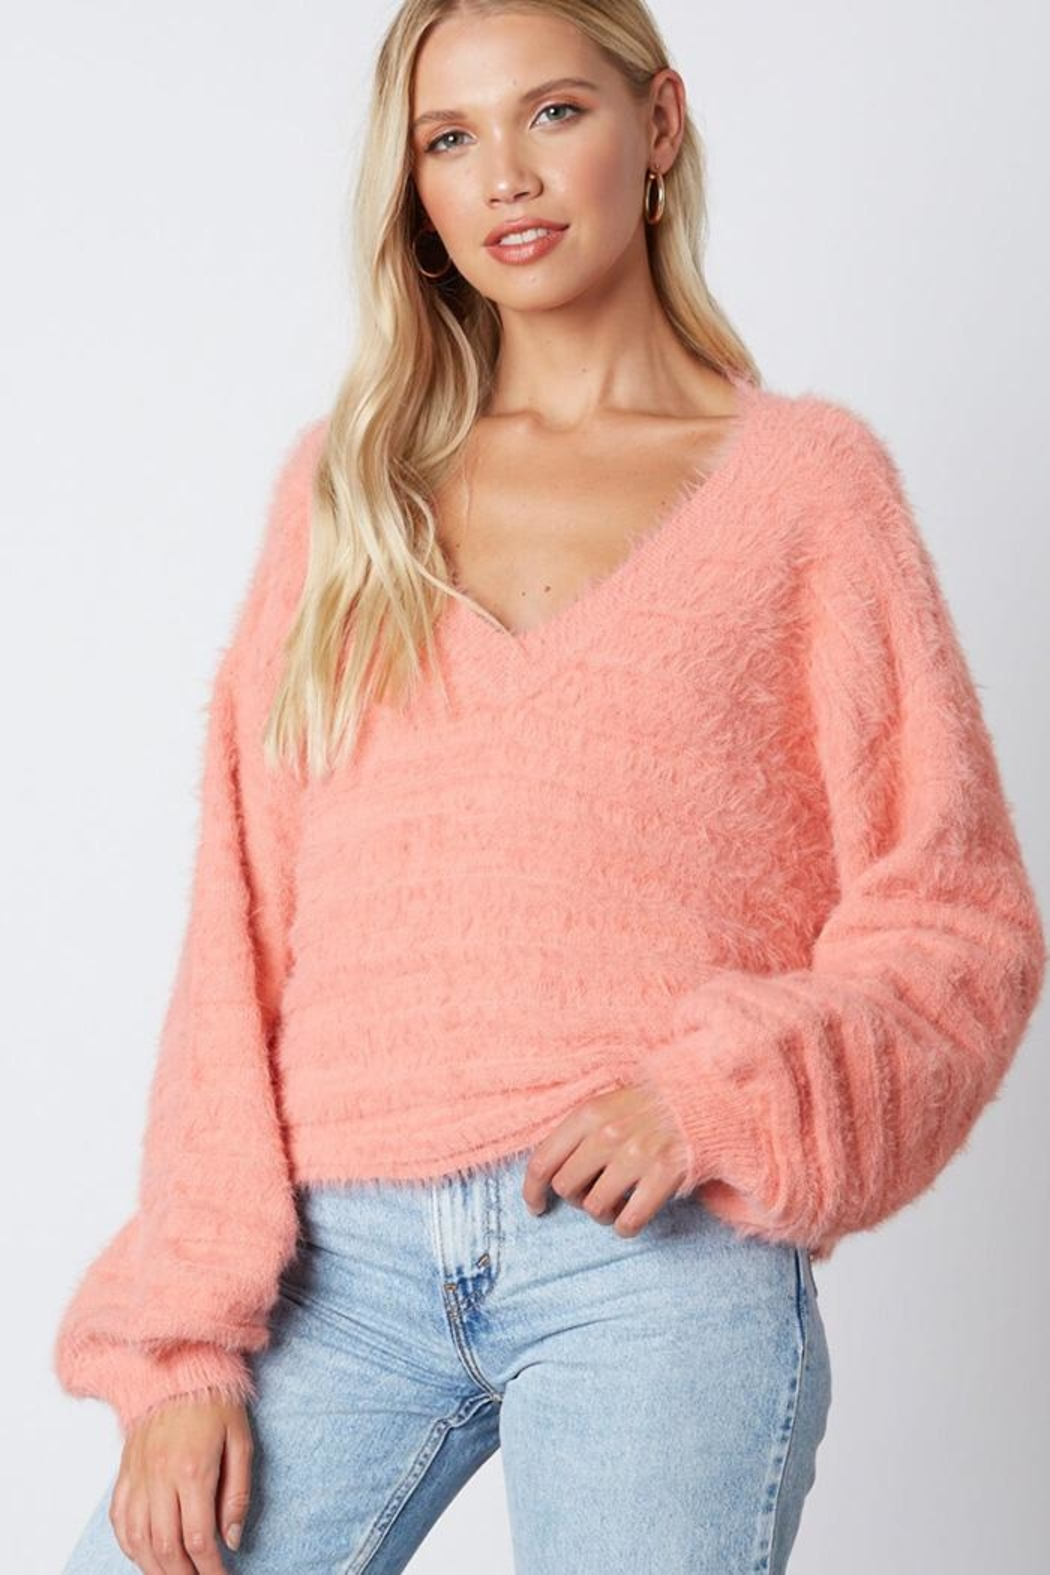 Cotton Candy LA Fuzzy v-Neck Sweaater - Main Image